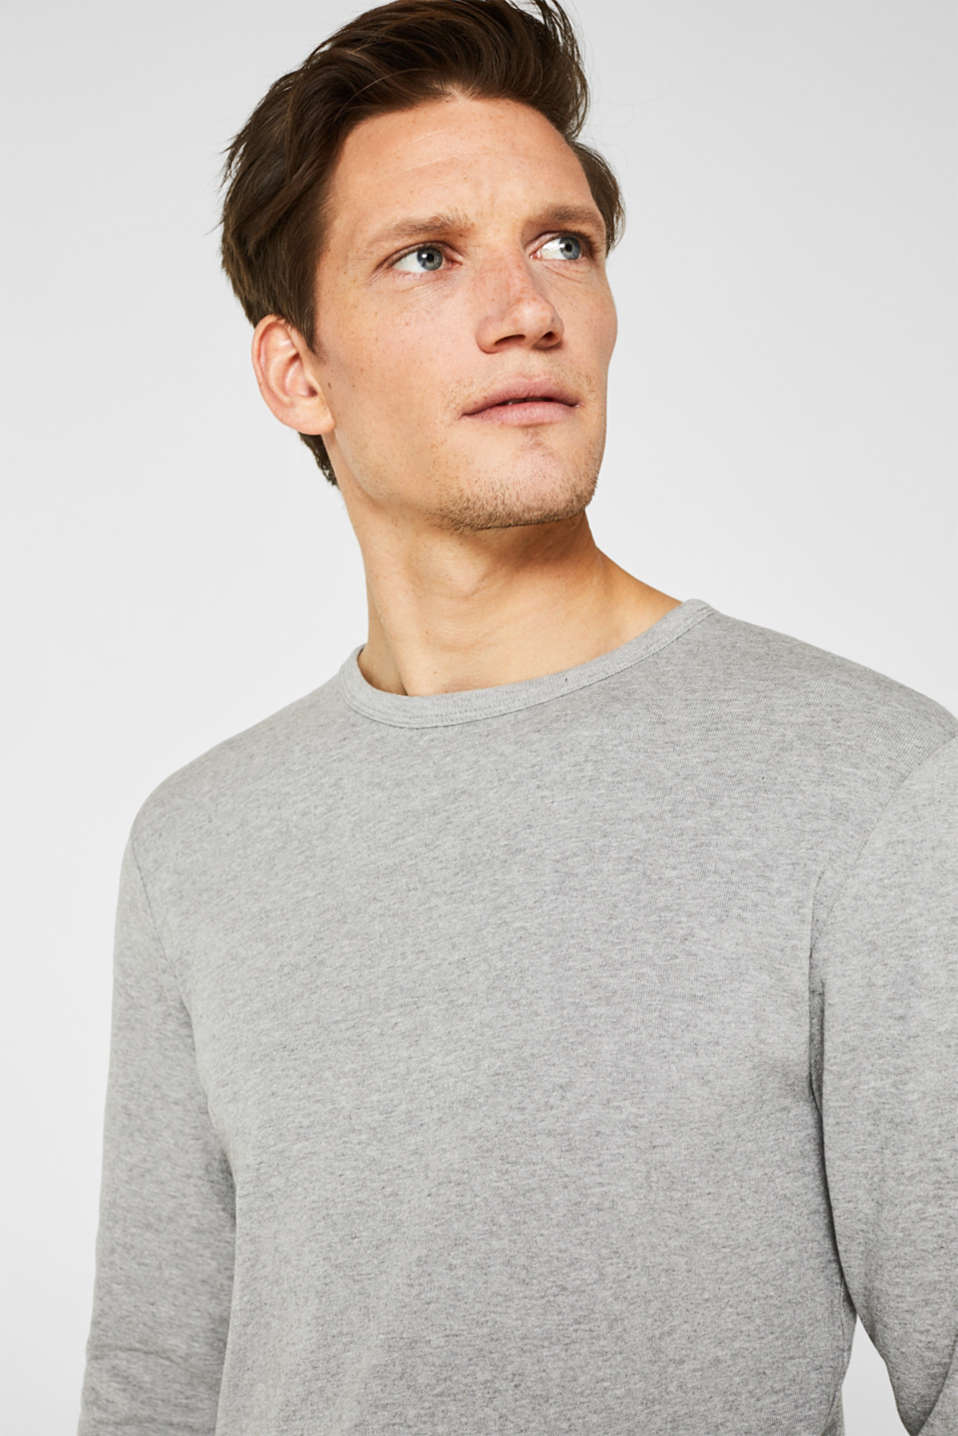 Ribbed long sleeve top in blended cotton, MEDIUM GREY 5, detail image number 5